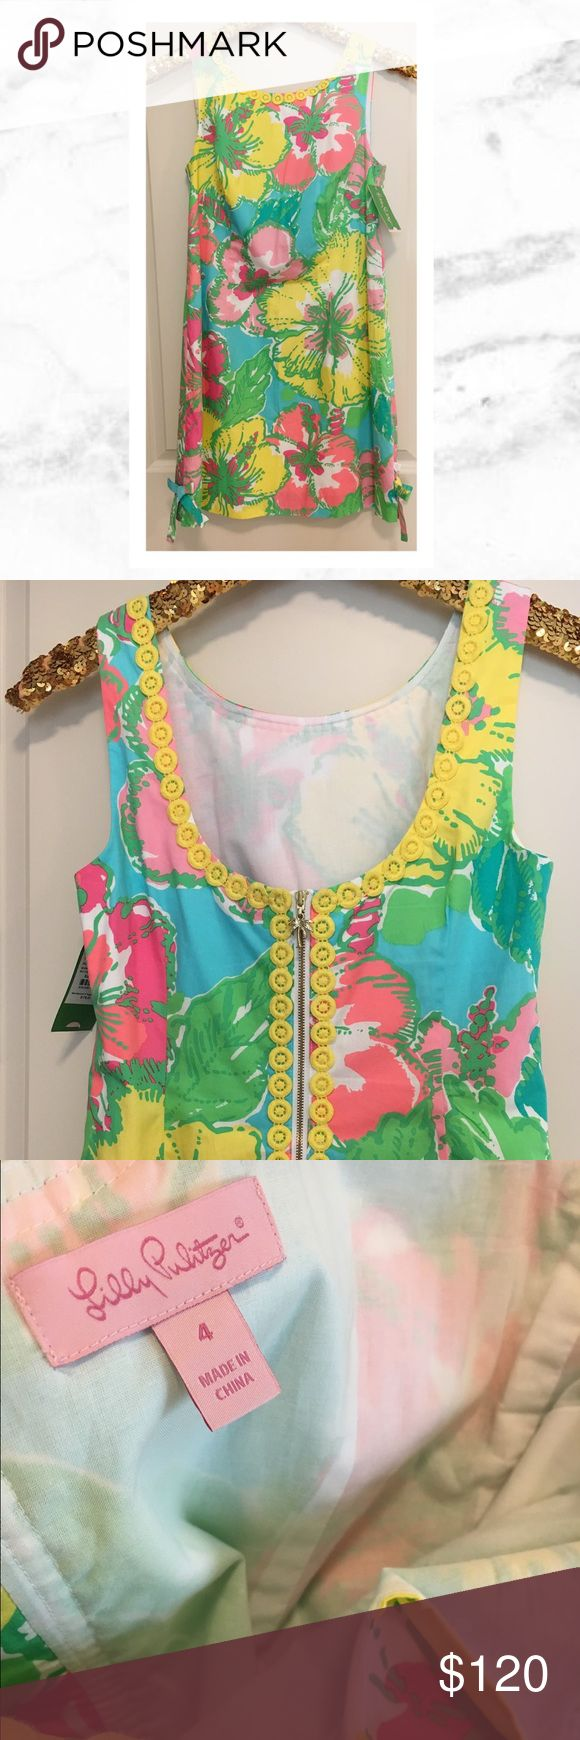 Lilly Pulitzer Delia Shift Dress Lilly Pulitzer Delia Shift Dress in size 4 New With Tags! Pattern is 'Big Flirt.' Super cute 100% authentic Lilly. Be extra cute this spring! Lilly Pulitzer Dresses